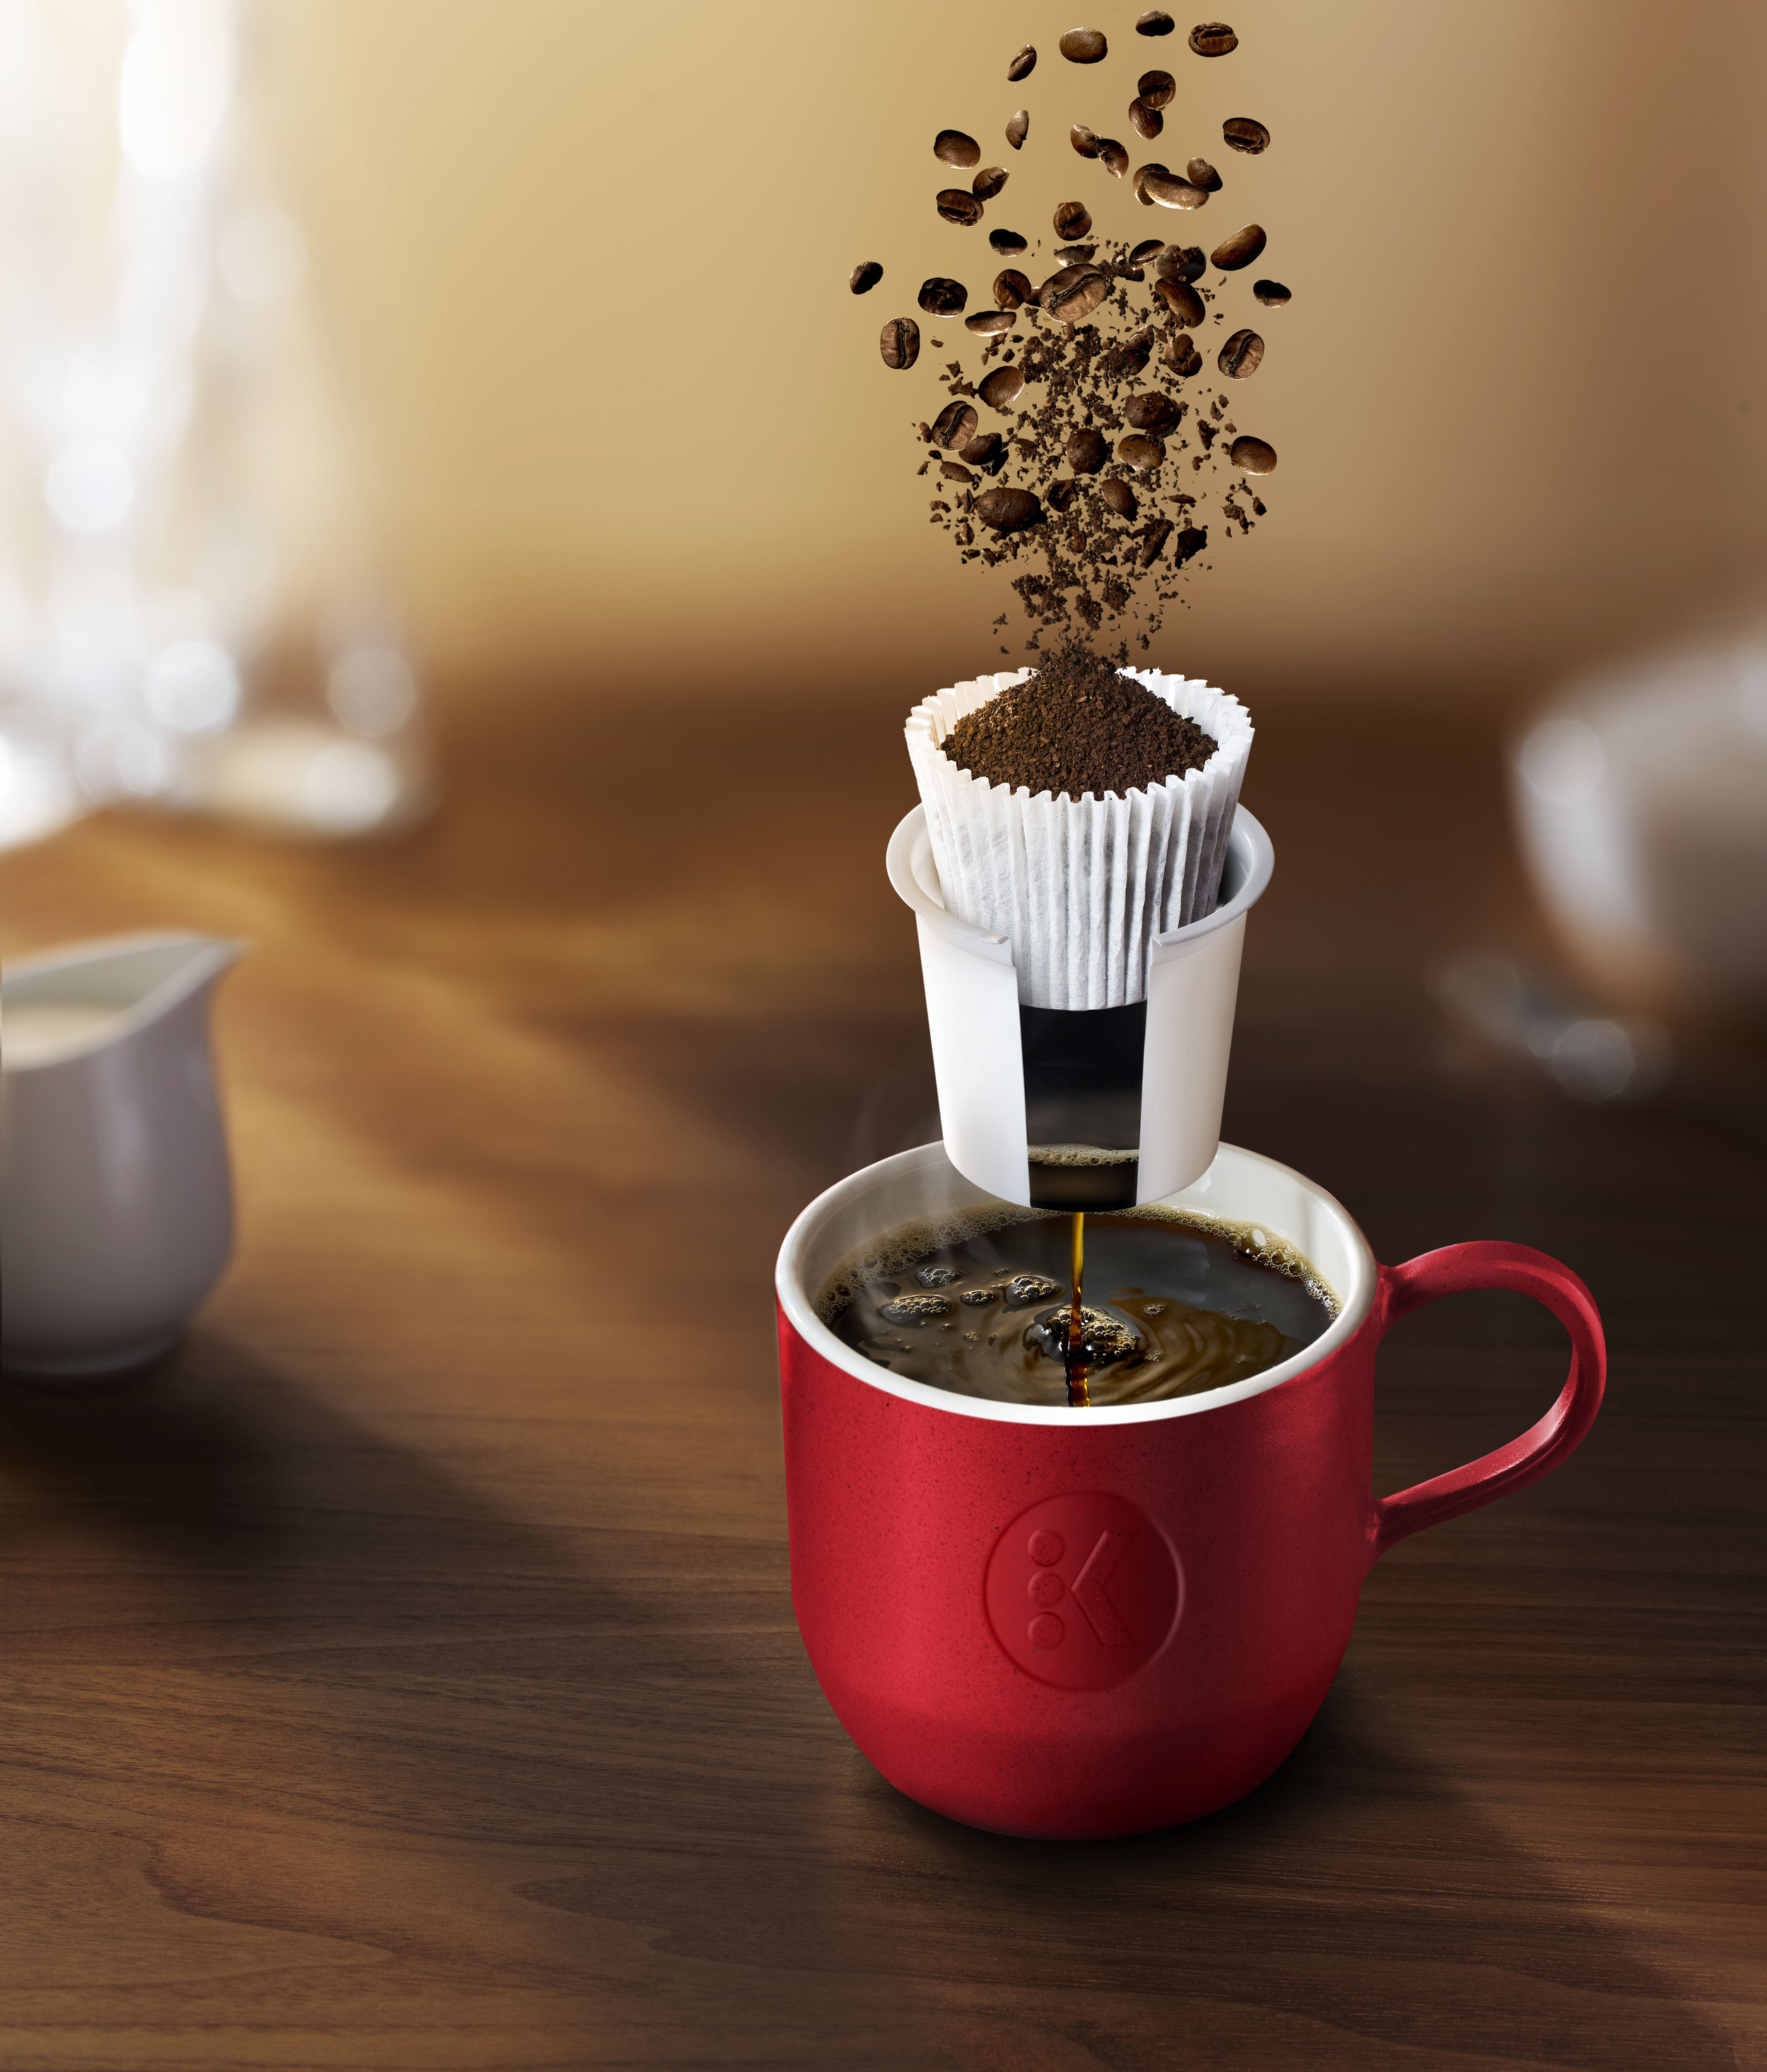 David Butler-Boston Commercial Product Photographer-Packaging-Redesign-Photo-Shoot- Conceptual Image - Keurig